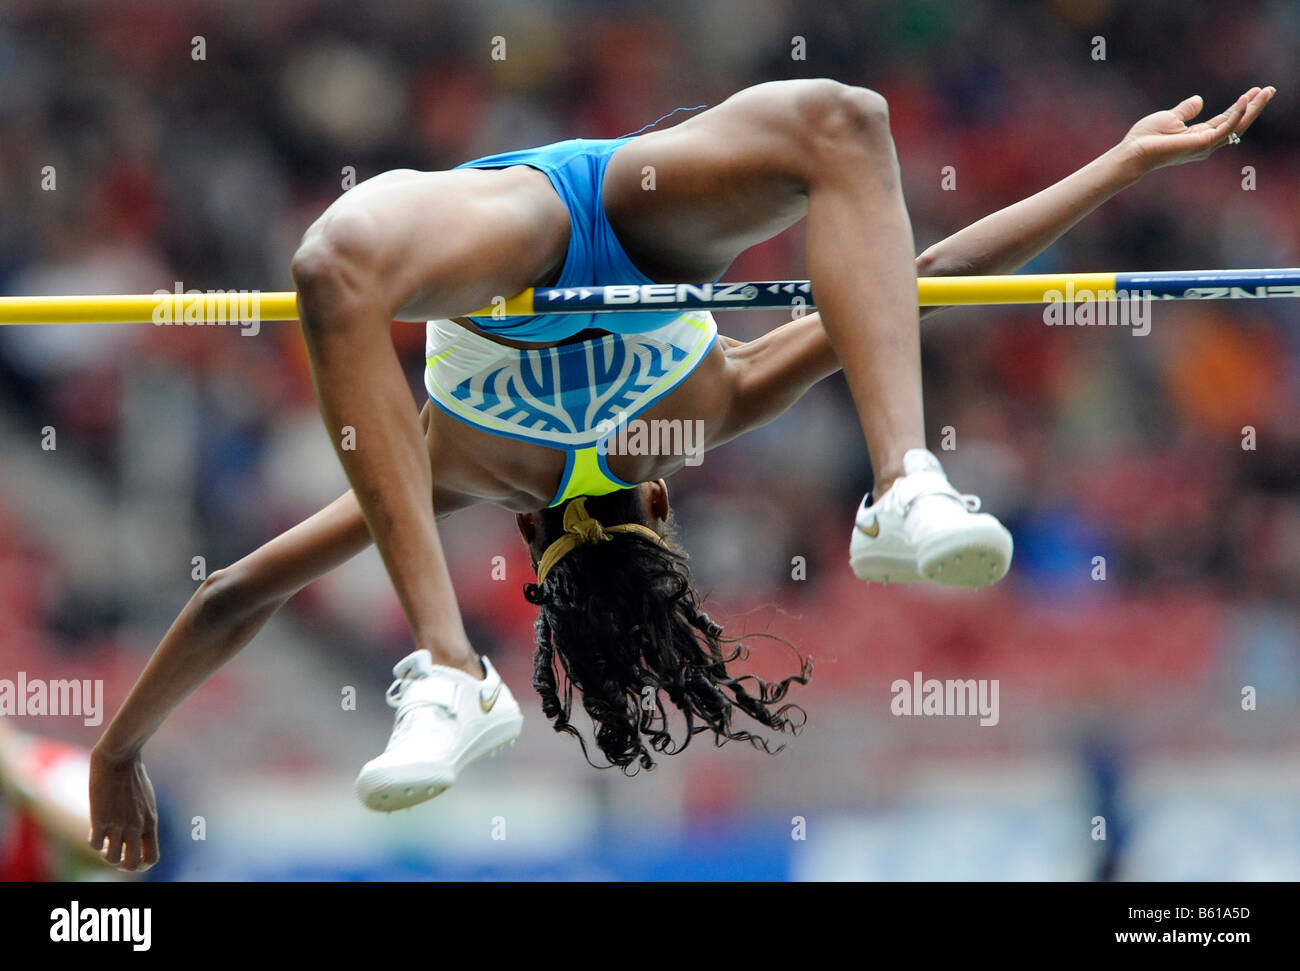 Chaunte HOWARD, USA, High Jump, at the IAAF 2008 World Athletics Final for track and field in the Mercedes-Benz - Stock Image